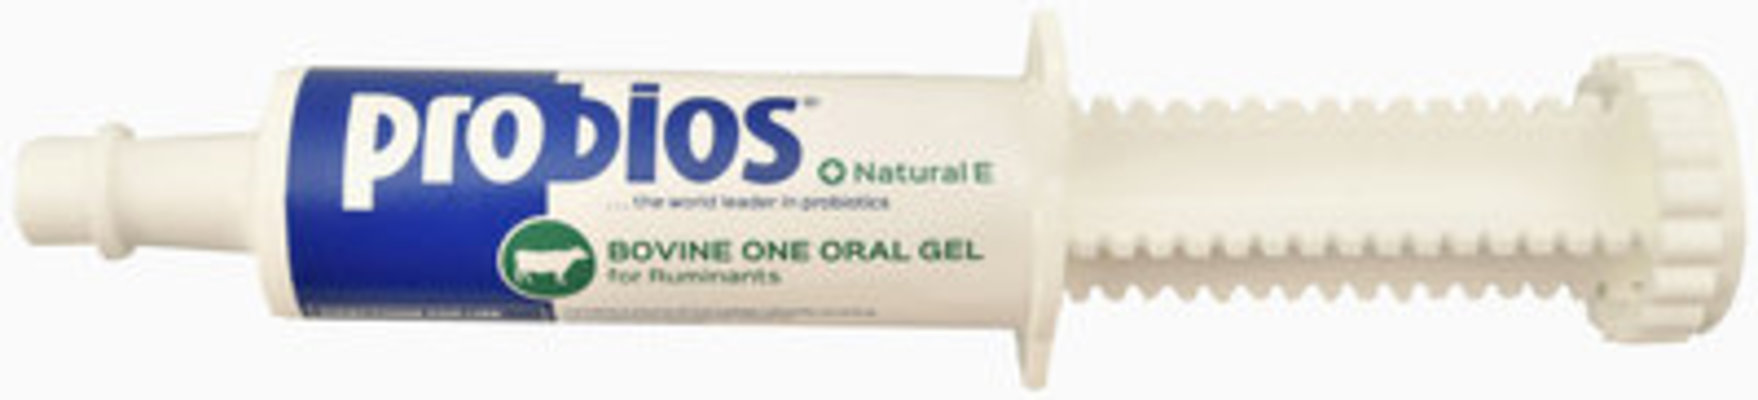 Probios Bovine One Plus Natural E